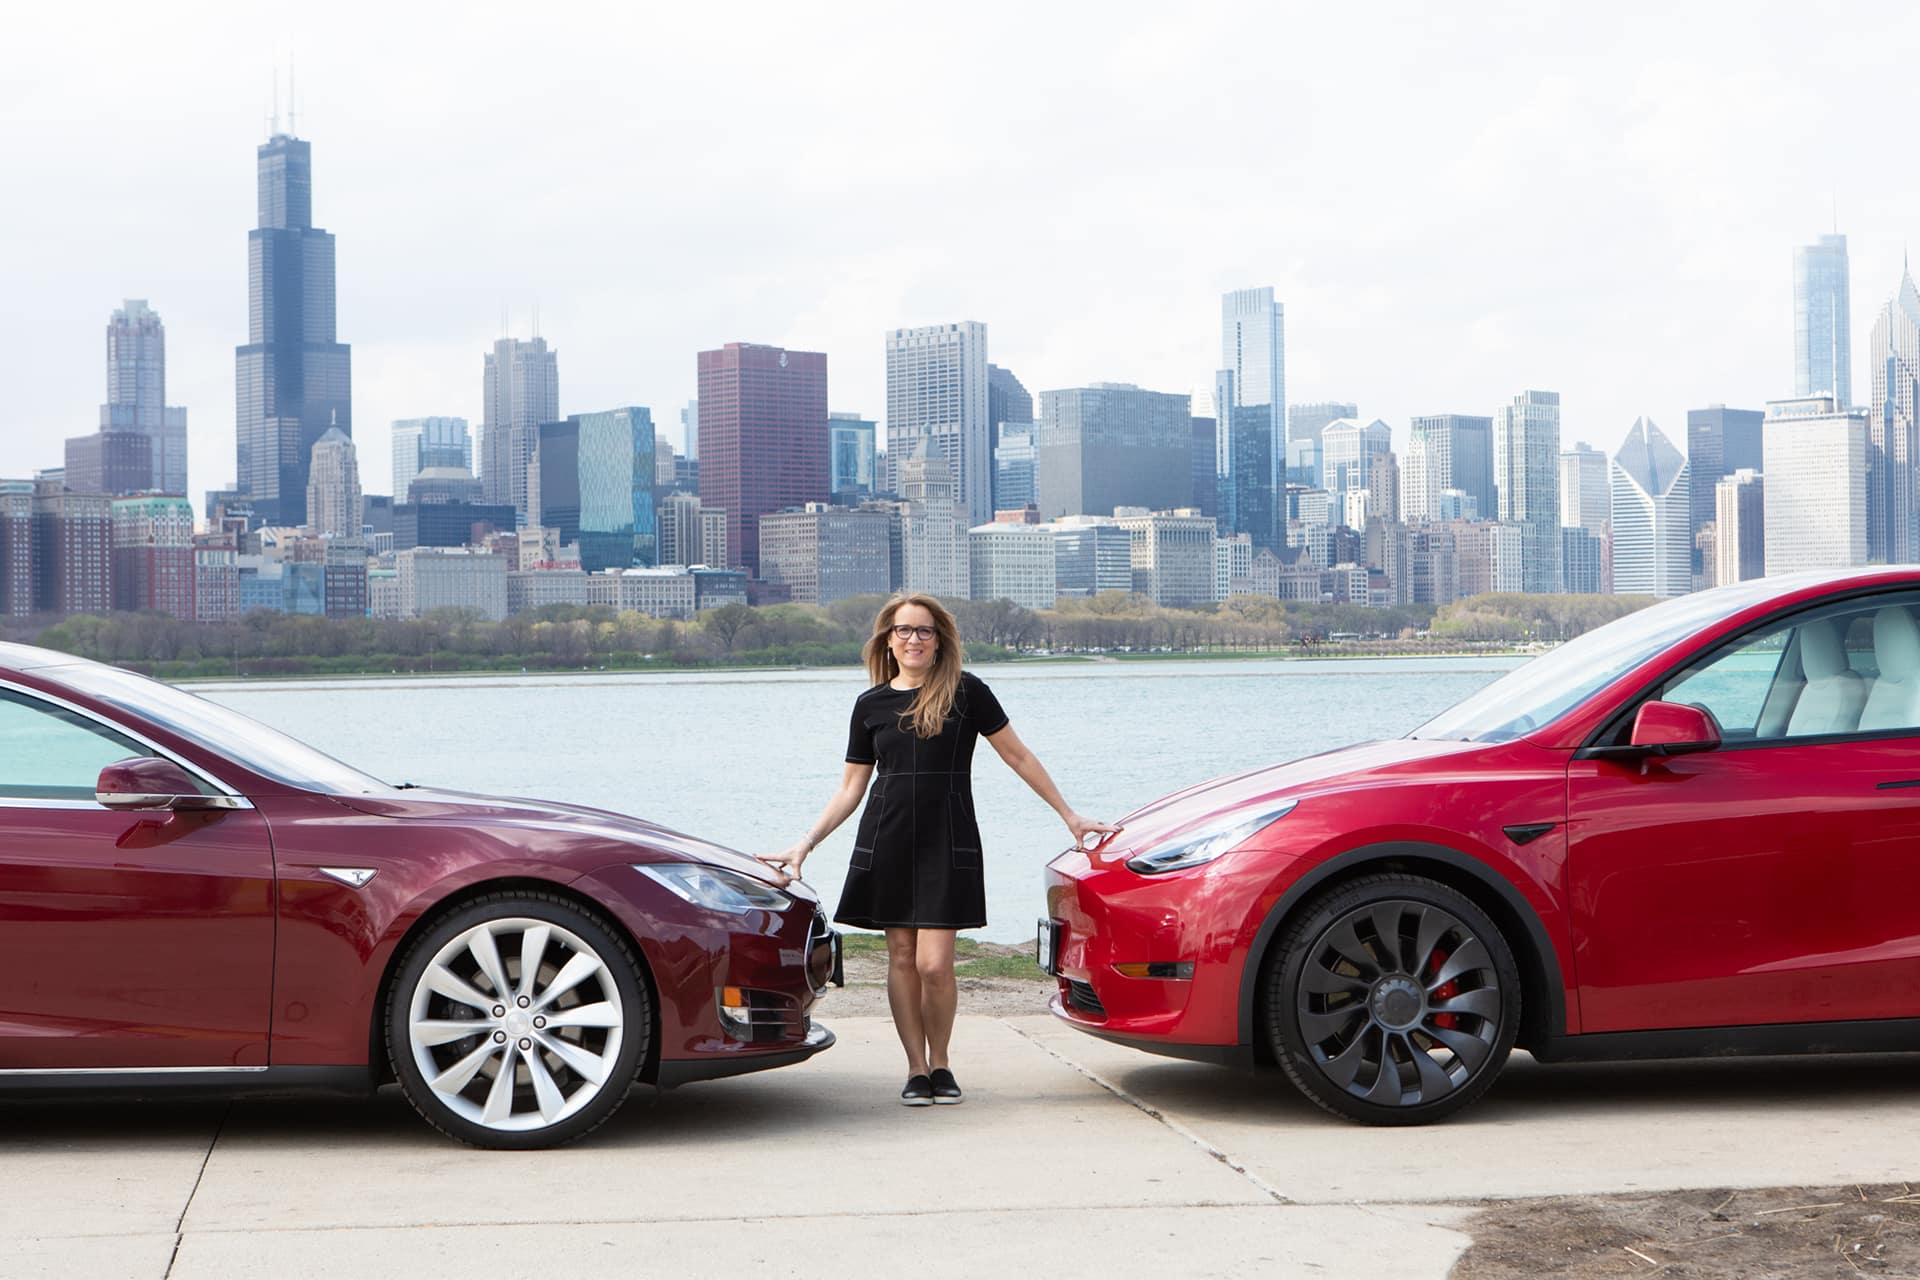 2012 Model S Signature Performance and 2020 Model Y Along the Chicago Lakefront